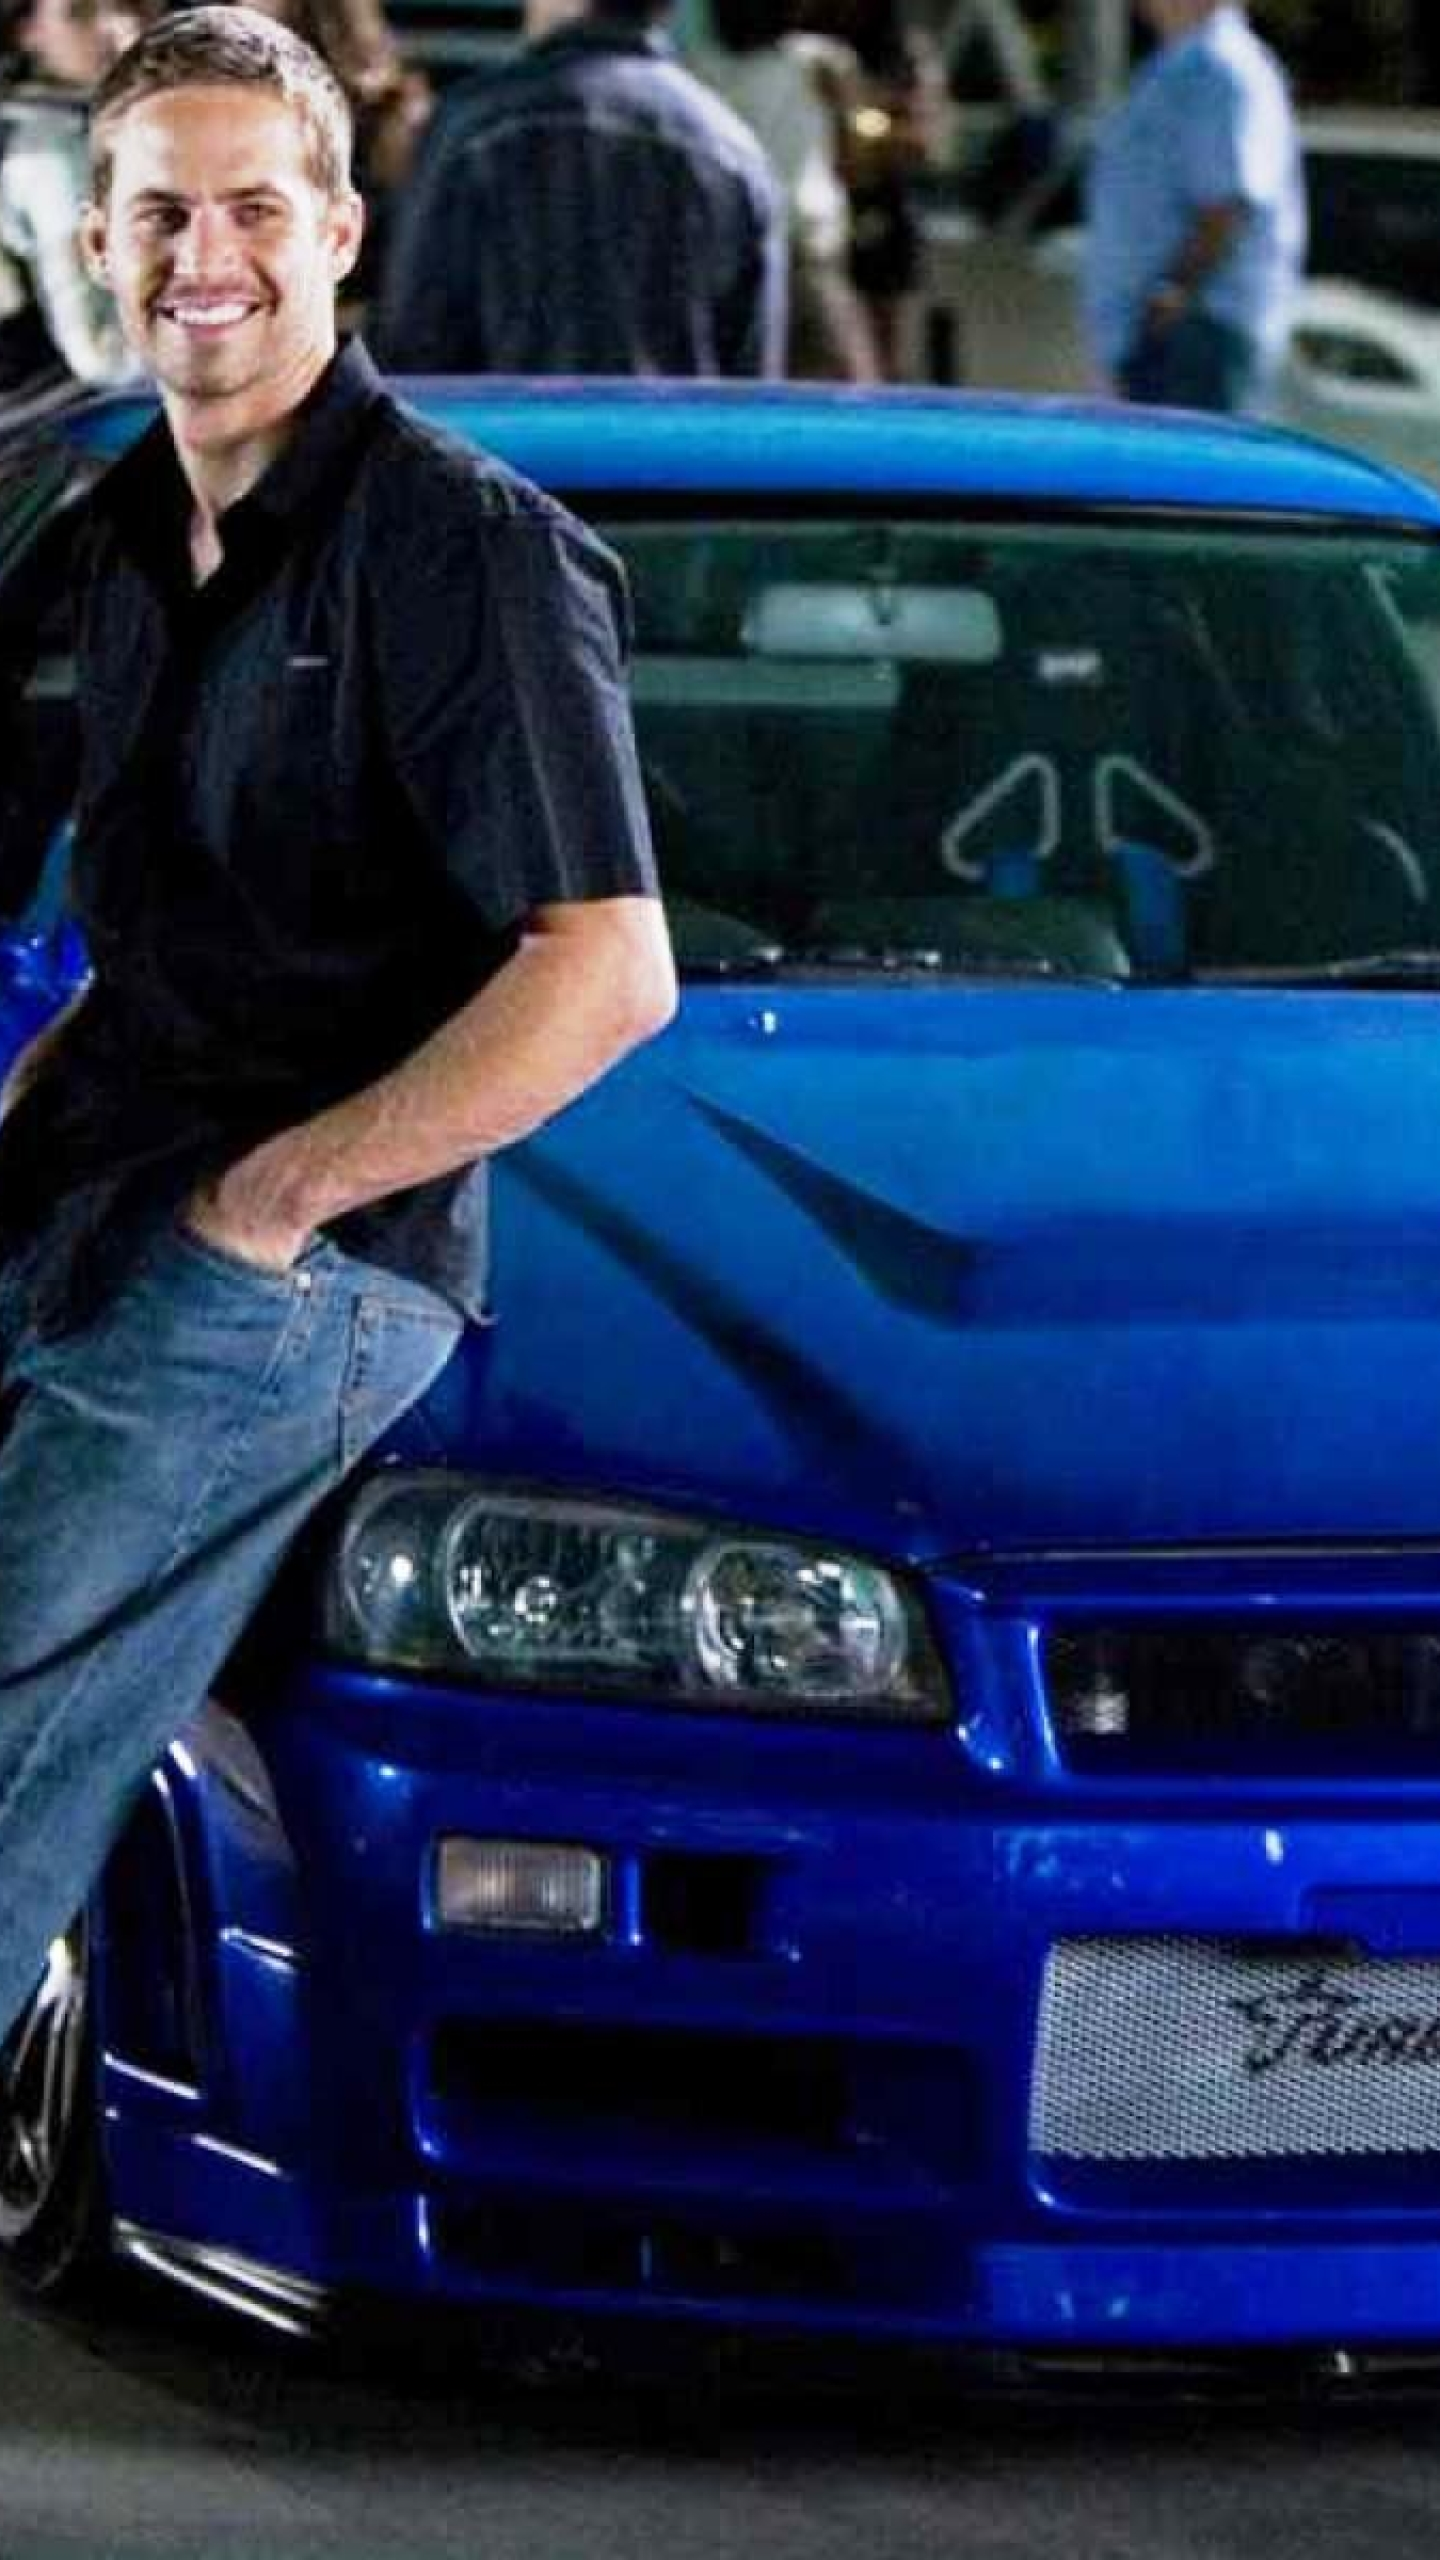 1440x2560 Fast And Furious Paul Walker Blue Car Wallpaper Samsung